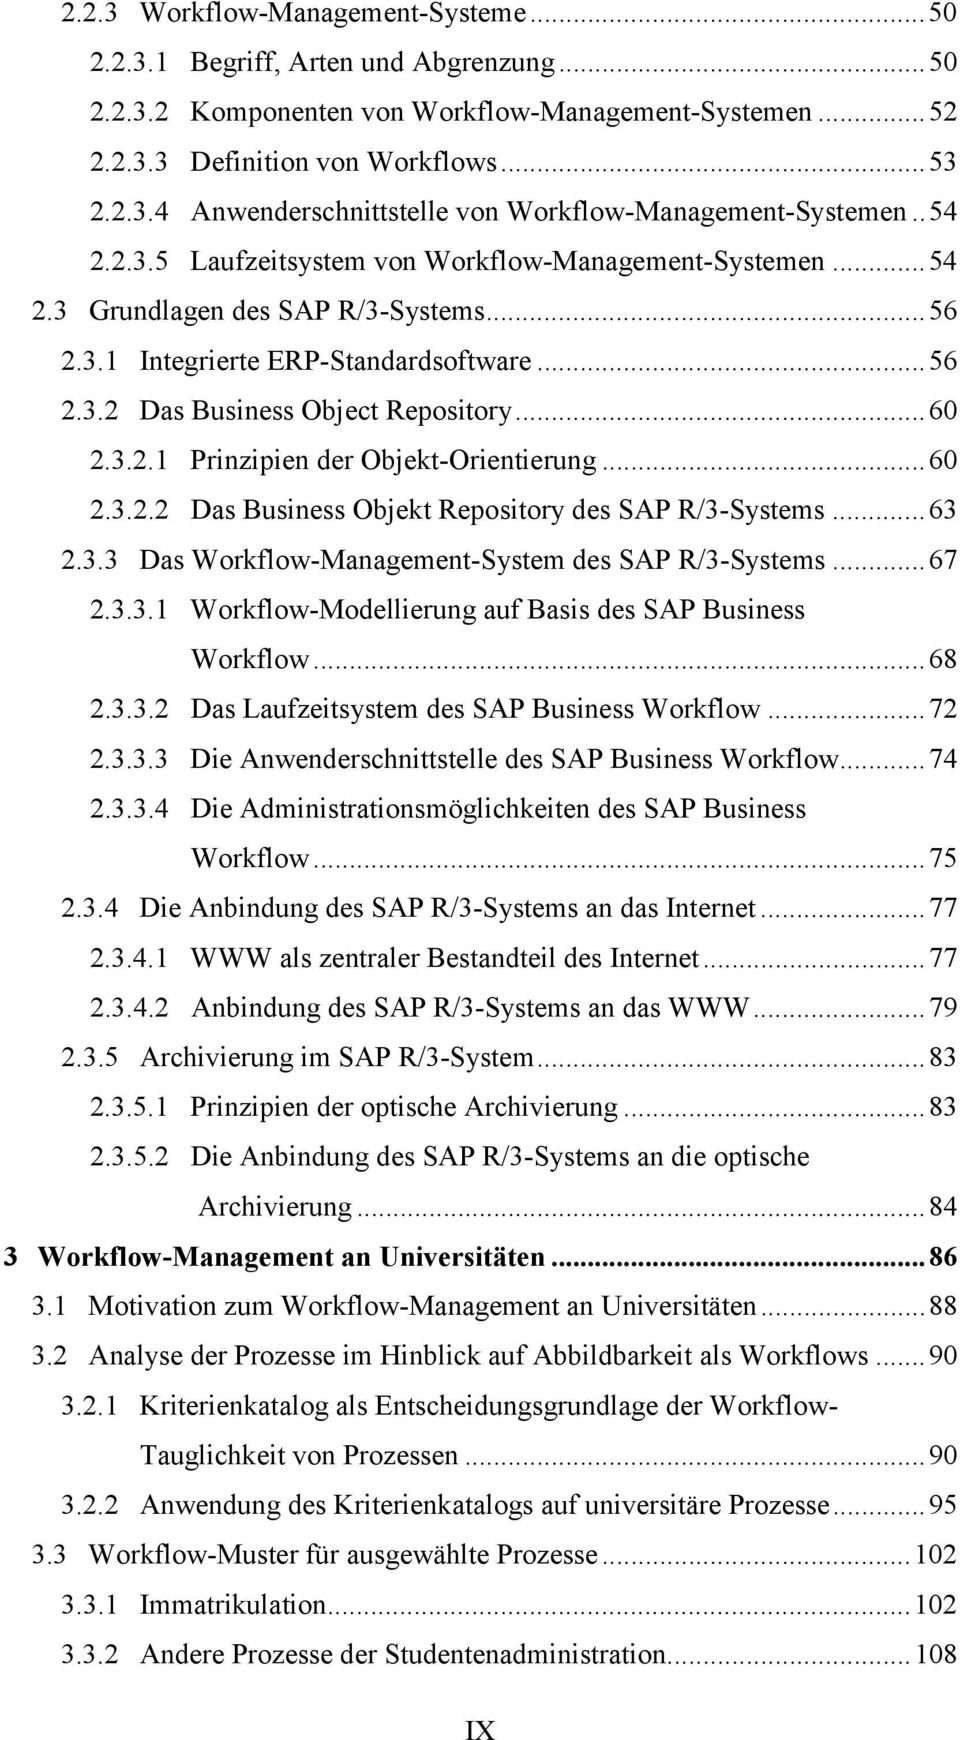 ..60 2.3.2.2 Das Business Objekt Repository des SAP R/3-Systems...63 2.3.3 Das Workflow-Management-System des SAP R/3-Systems...67 2.3.3.1 Workflow-Modellierung auf Basis des SAP Business Workflow.